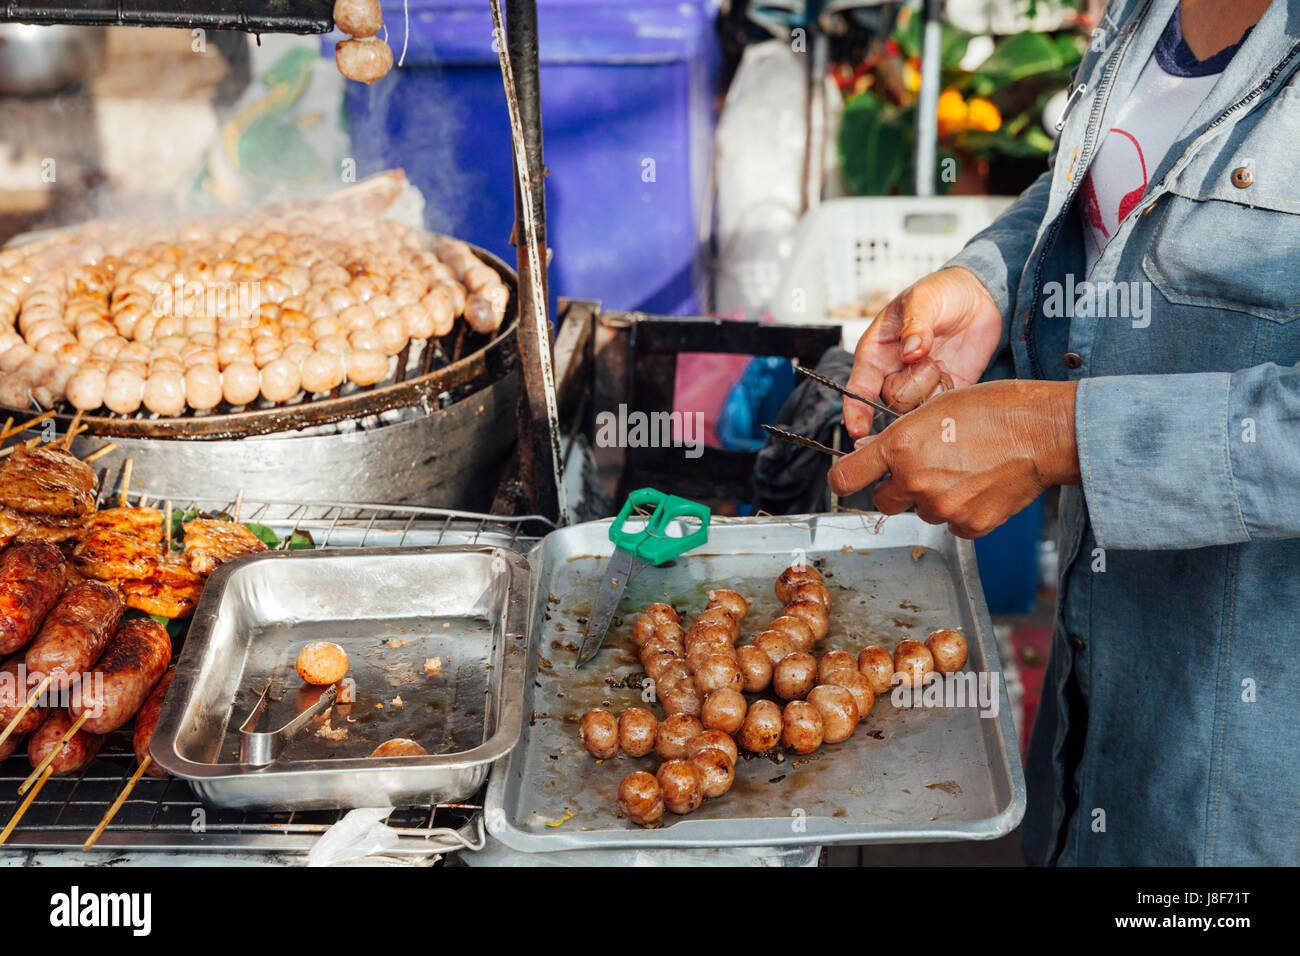 CHIANG MAI, THAILAND - AUGUST 21: Thai woman cooks meatballs at the Sunday Market (Walking Street) on August 21, - Stock Image